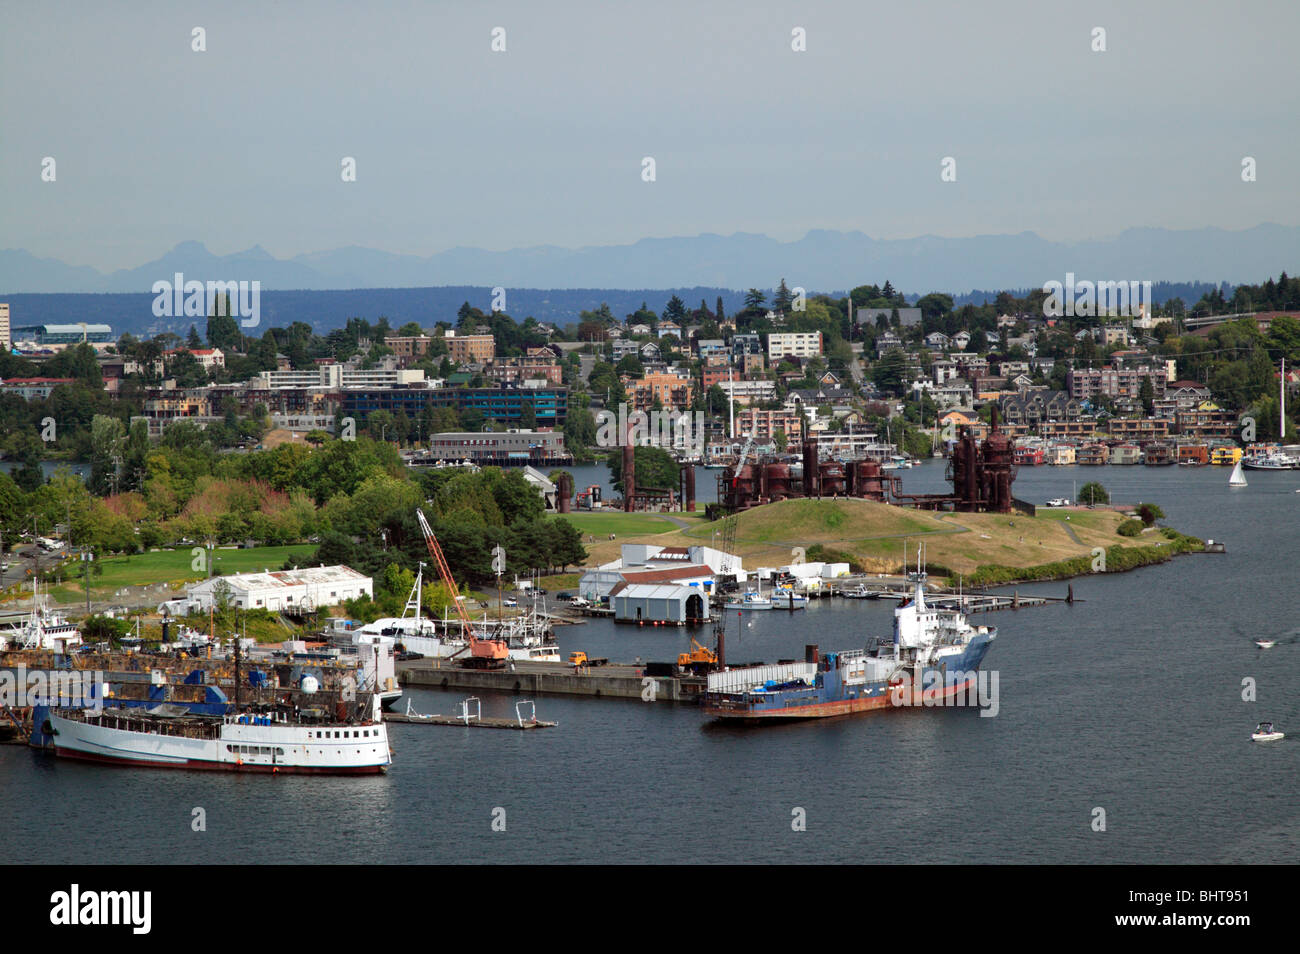 An arial view of Lake Union and Gasworks Park, Seattle. - Stock Image